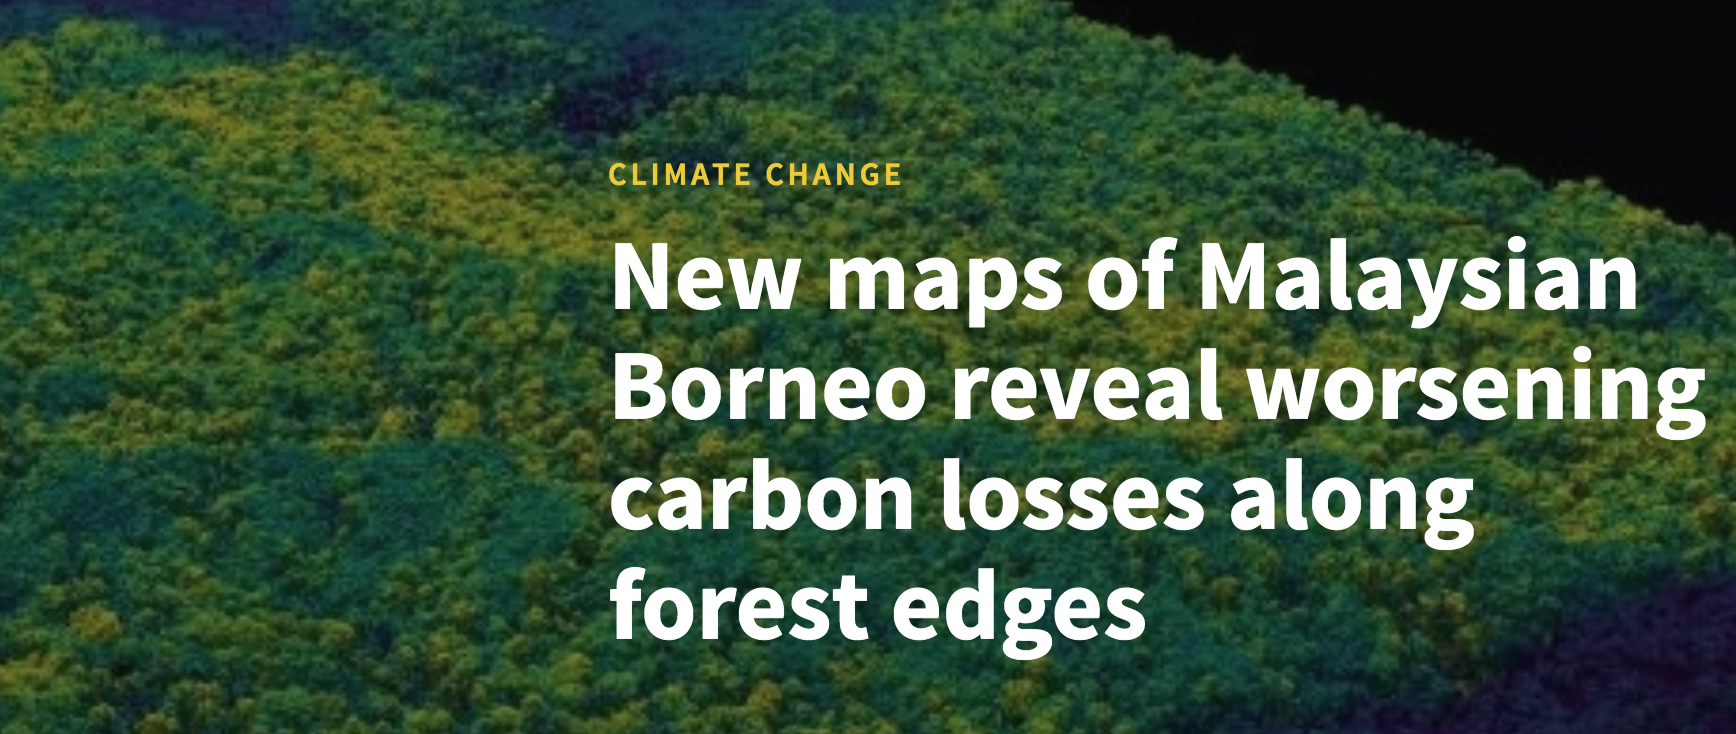 New maps of Malaysian Borneo reveal worsening carbon losses along forest edges